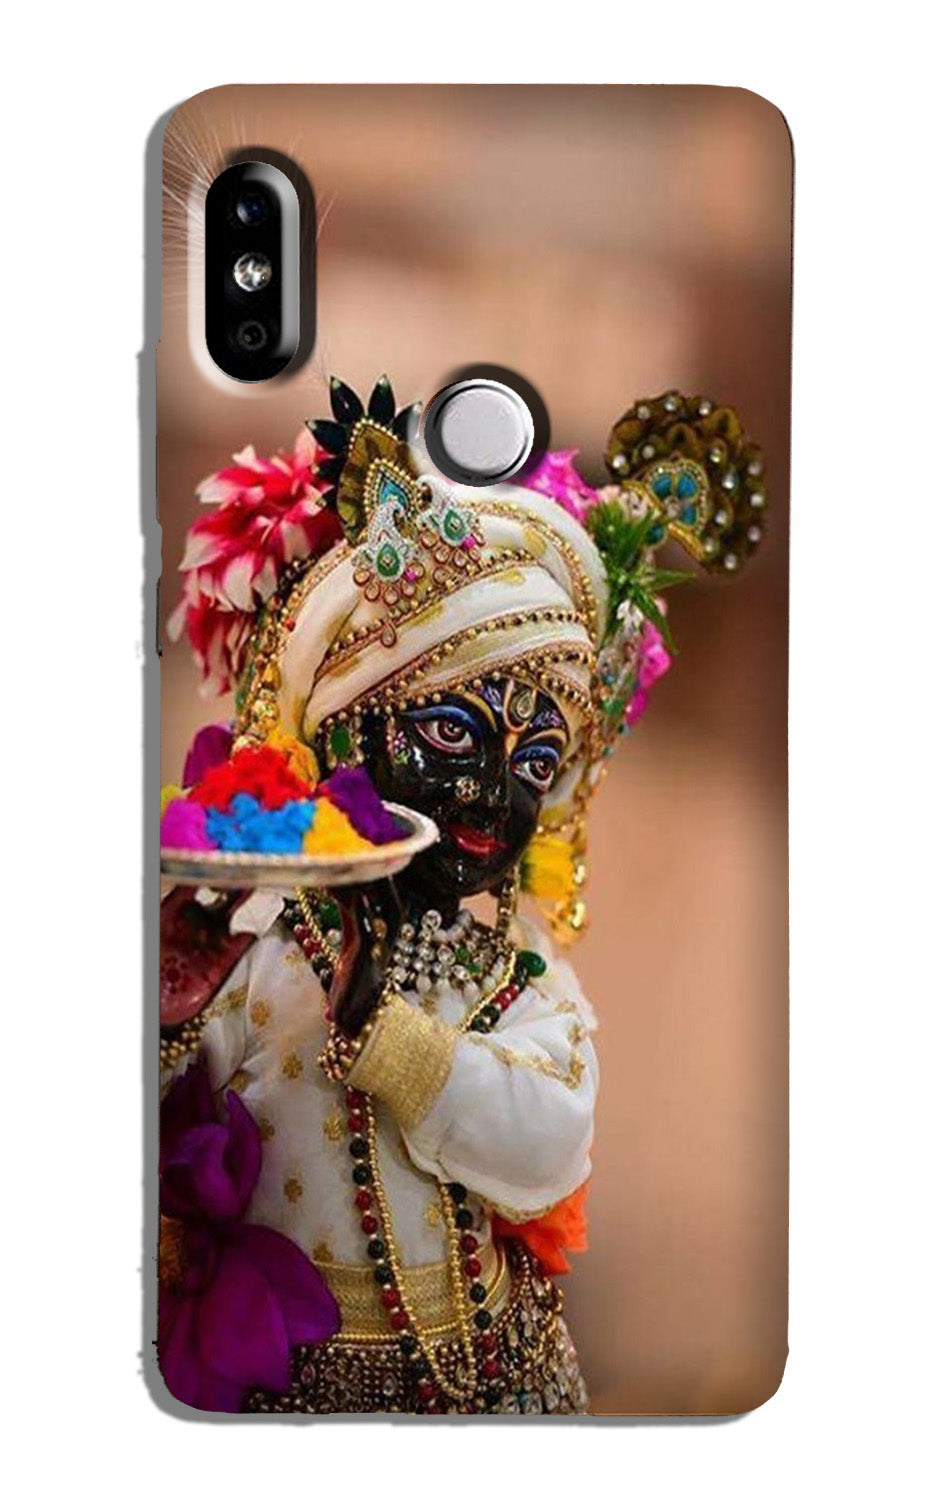 Lord Krishna2 Case for Redmi 6 Pro